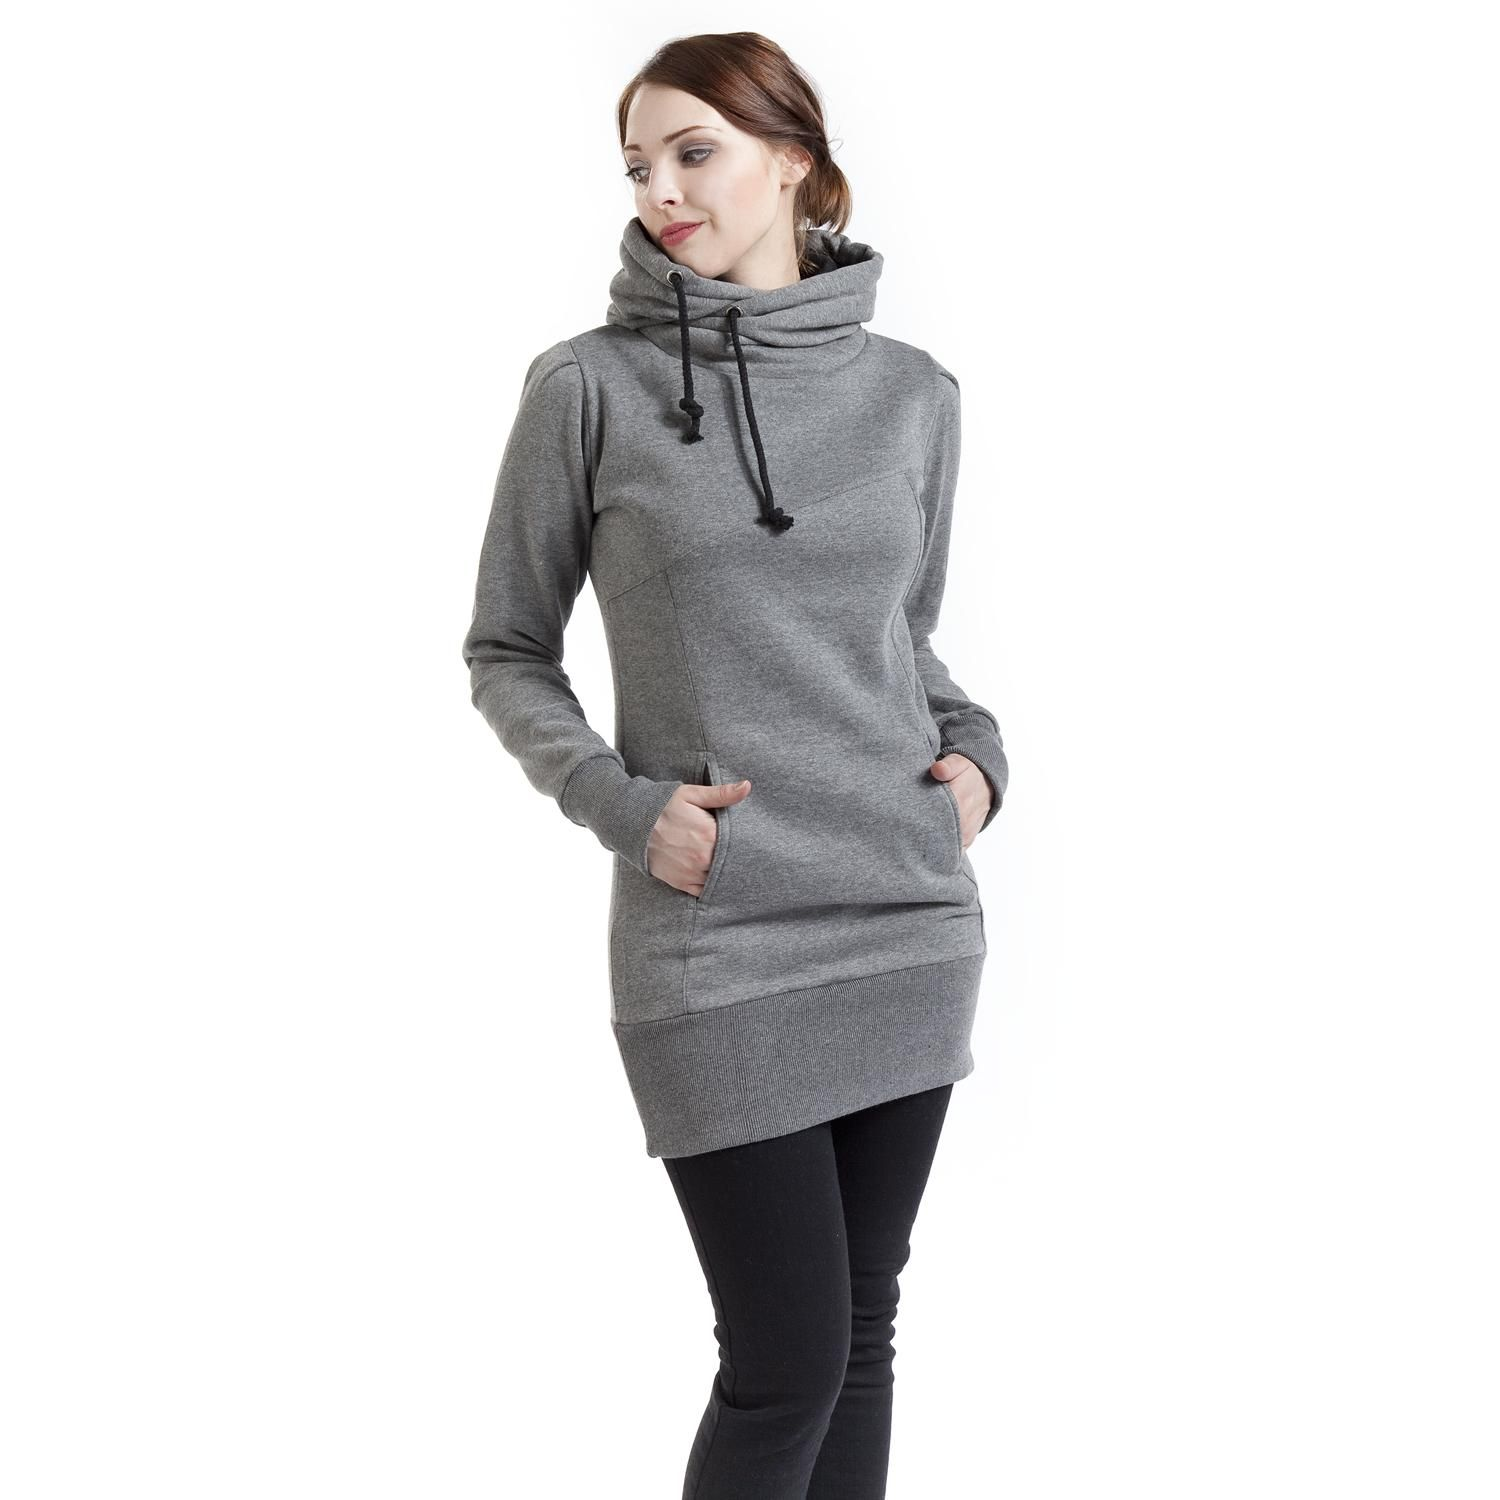 Smart Hoodie | Sweatshirt, Hoodie and Hooded sweater